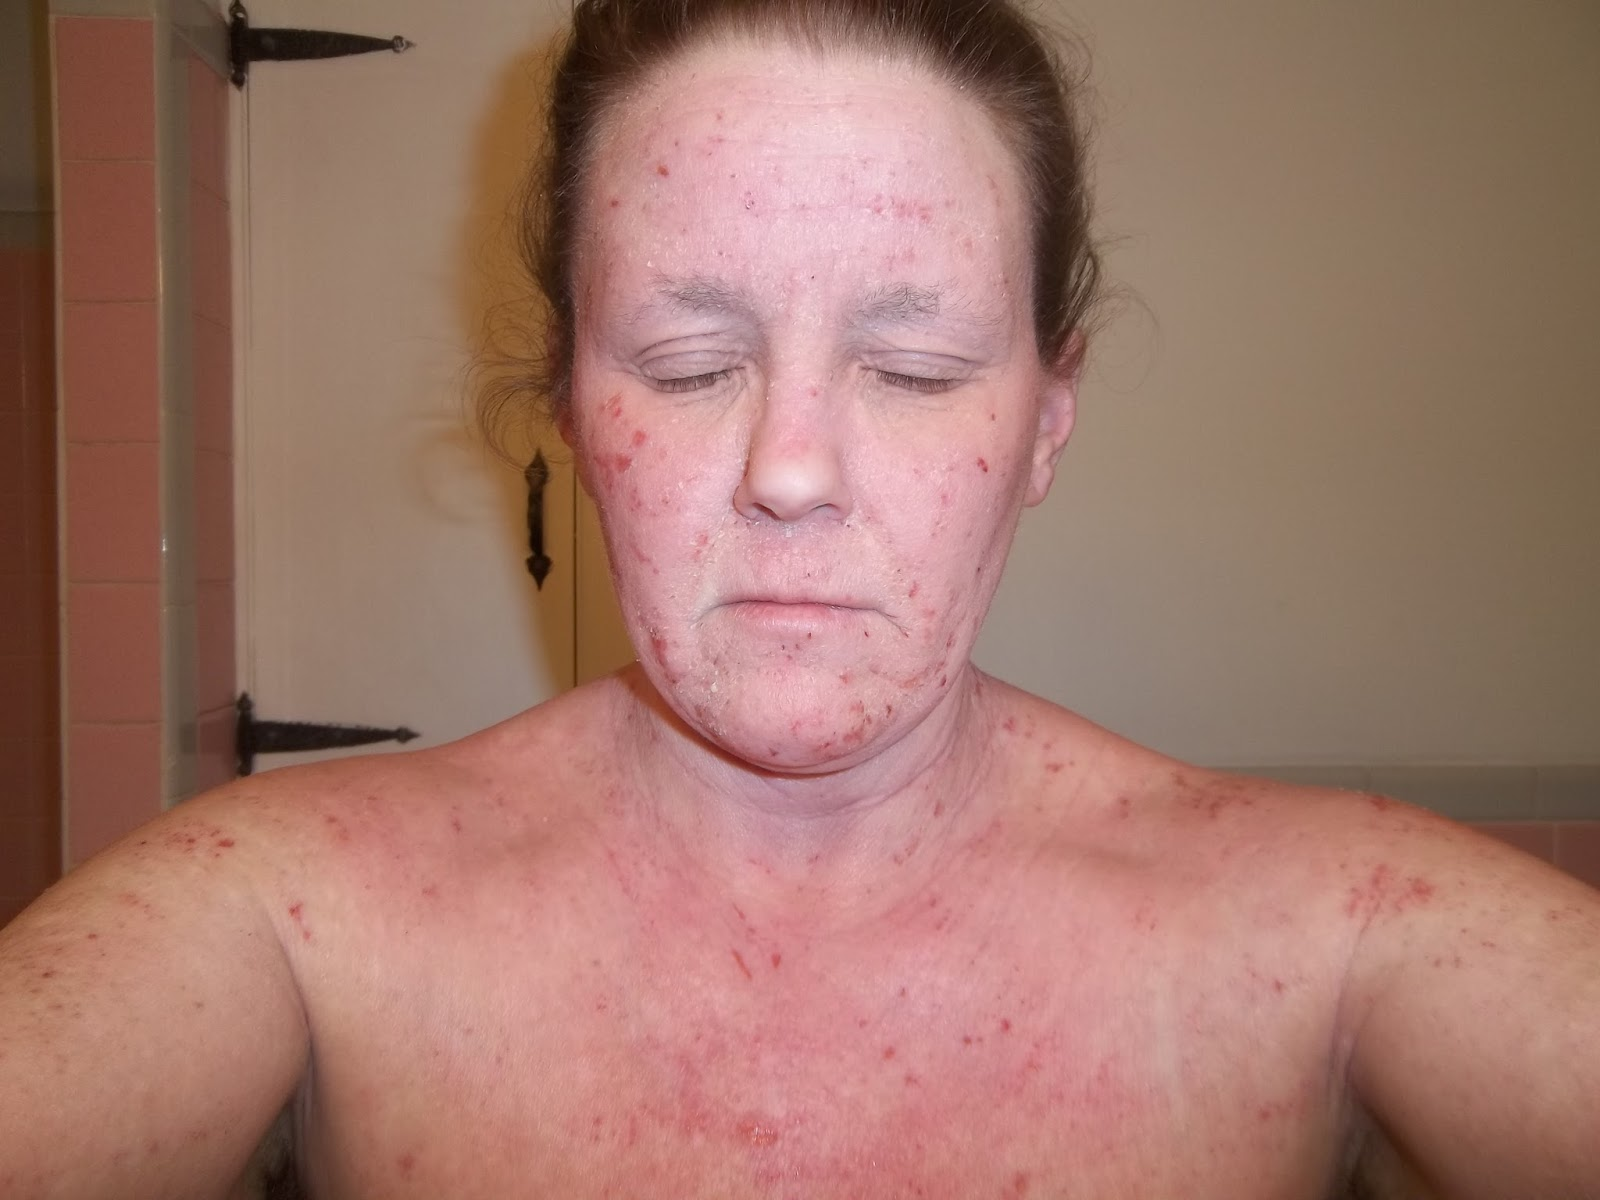 topical steroids for dermatitis